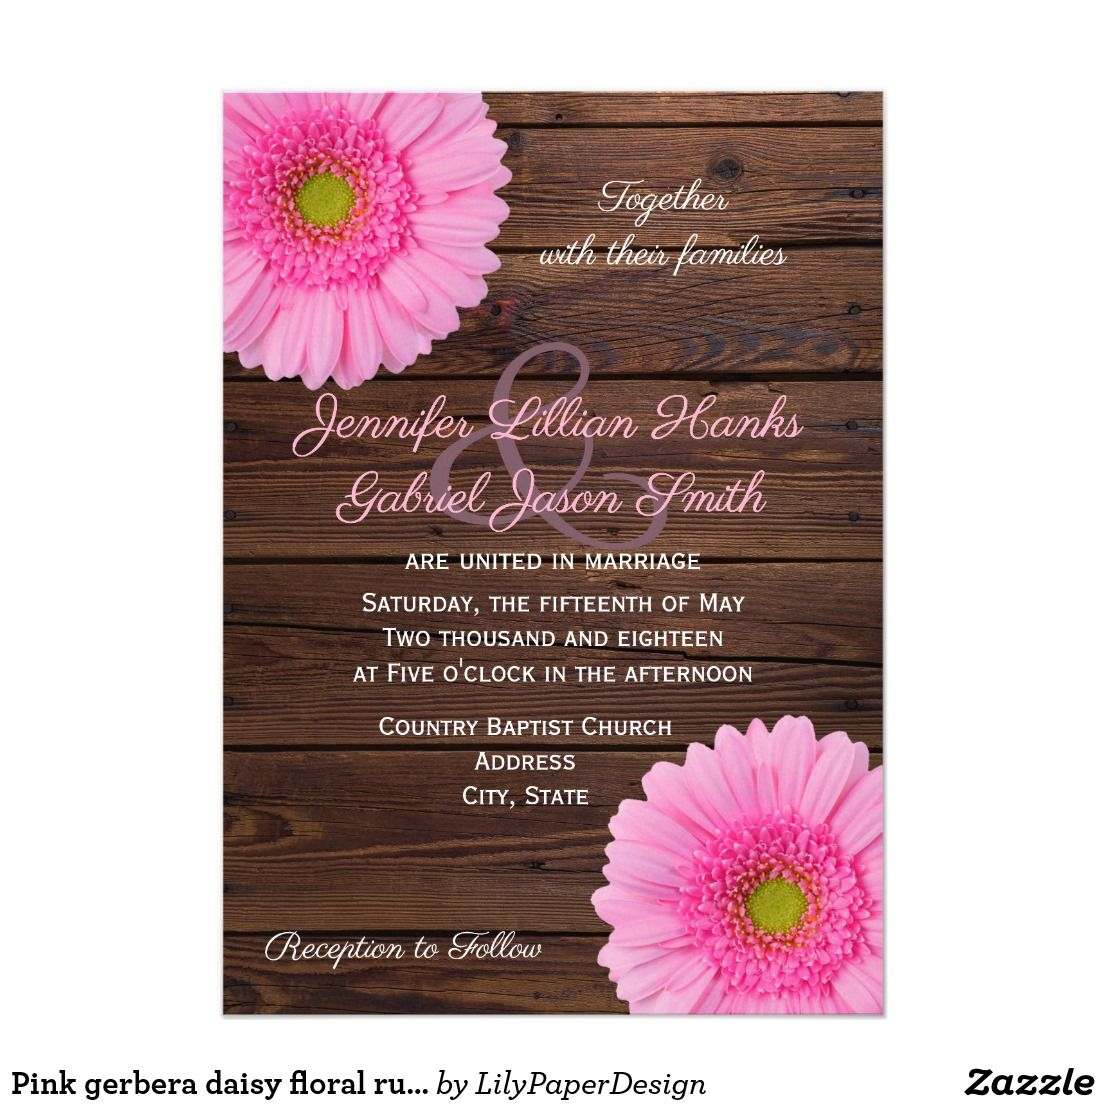 Pink Gerbera Daisy Floral Rustic Wood Wedding Invitation Zazzle Com Rustic Wood Wedding Invitations Wood Wedding Invitations Wedding In The Woods